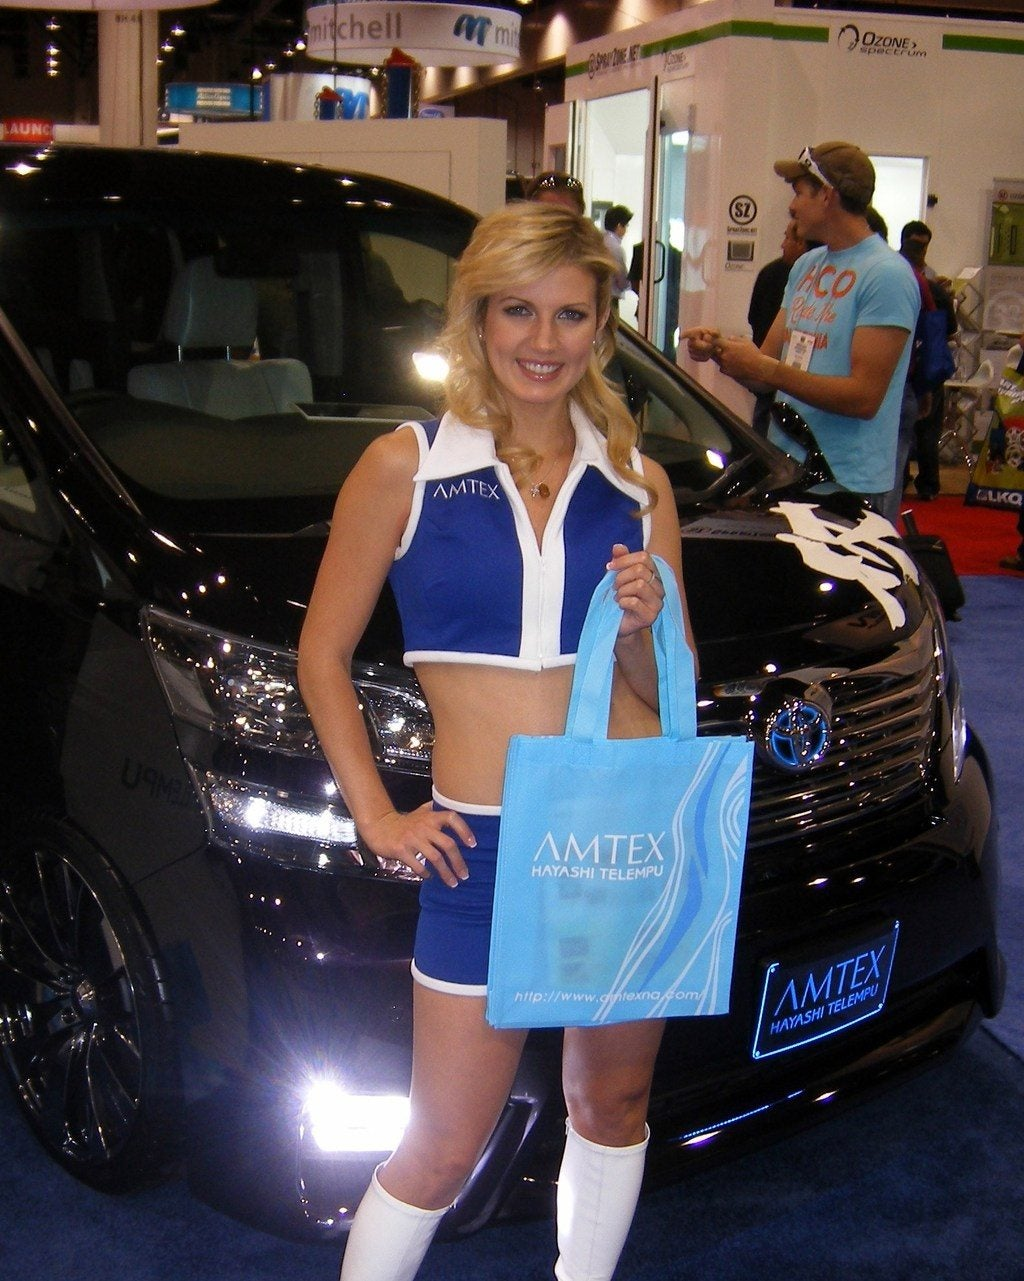 Safety Autonomous Car Sema 2011 Booth Babes 64 Photo On Automoblog